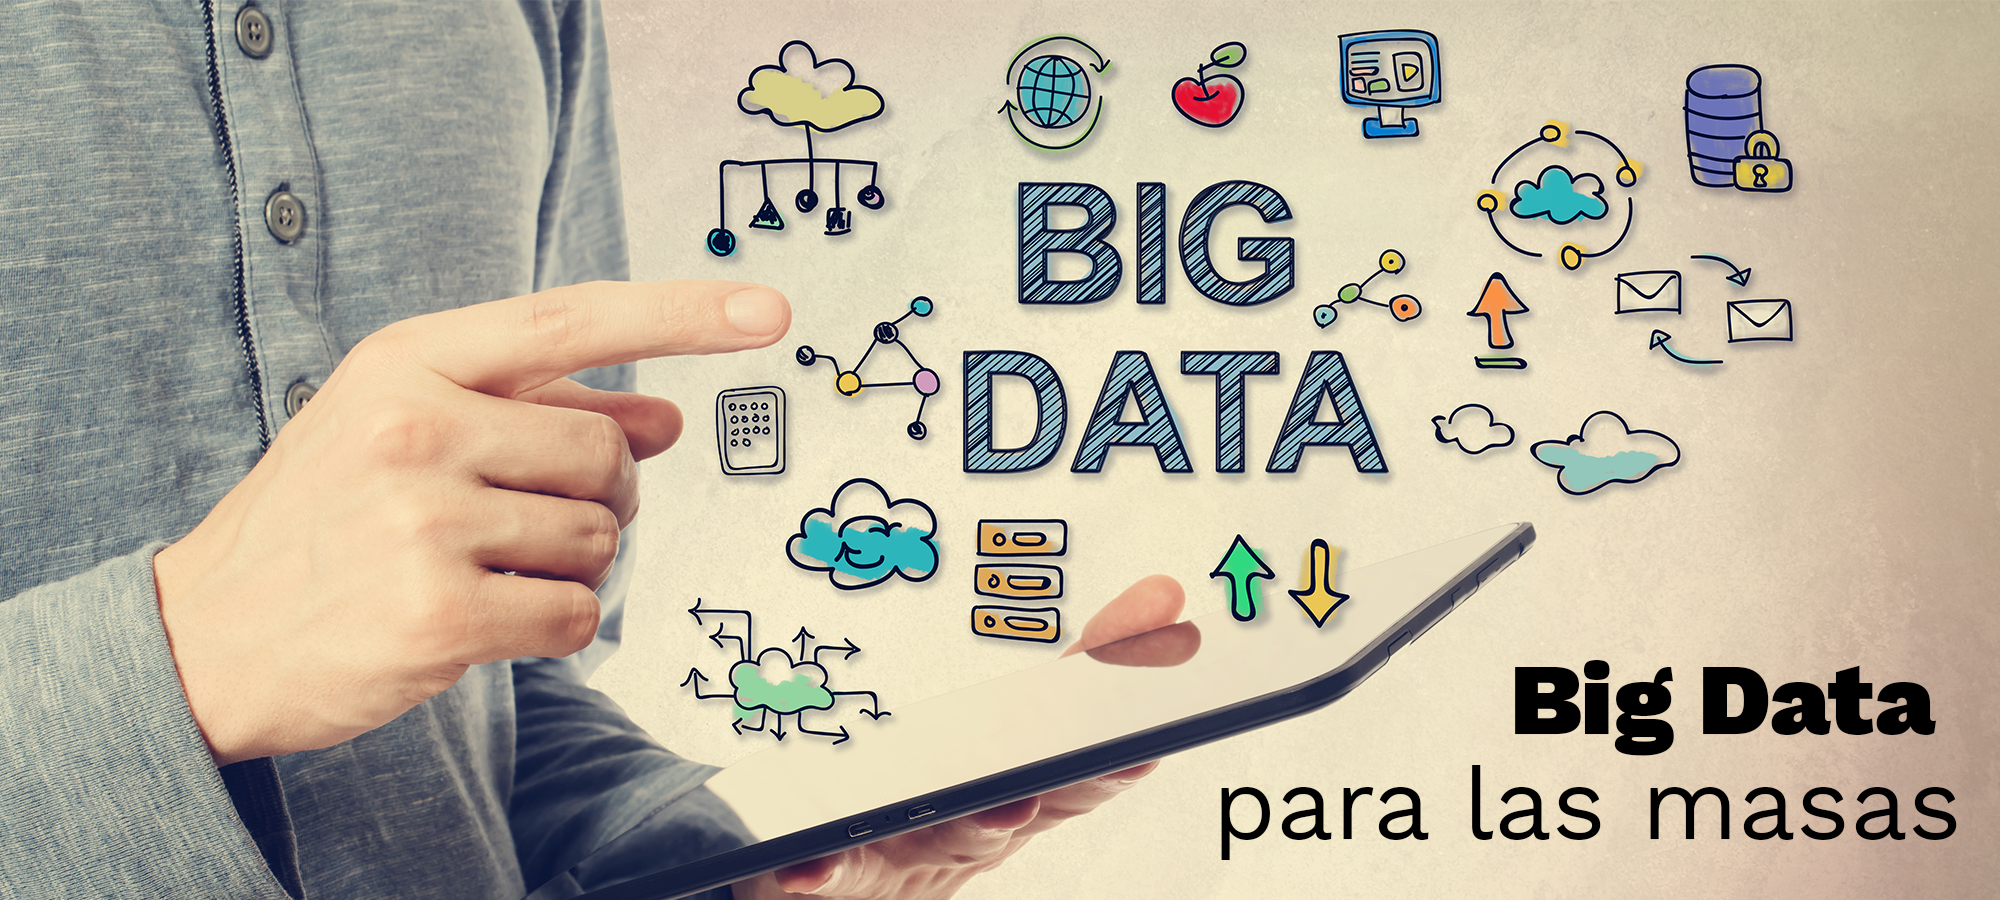 Big Data para las masas